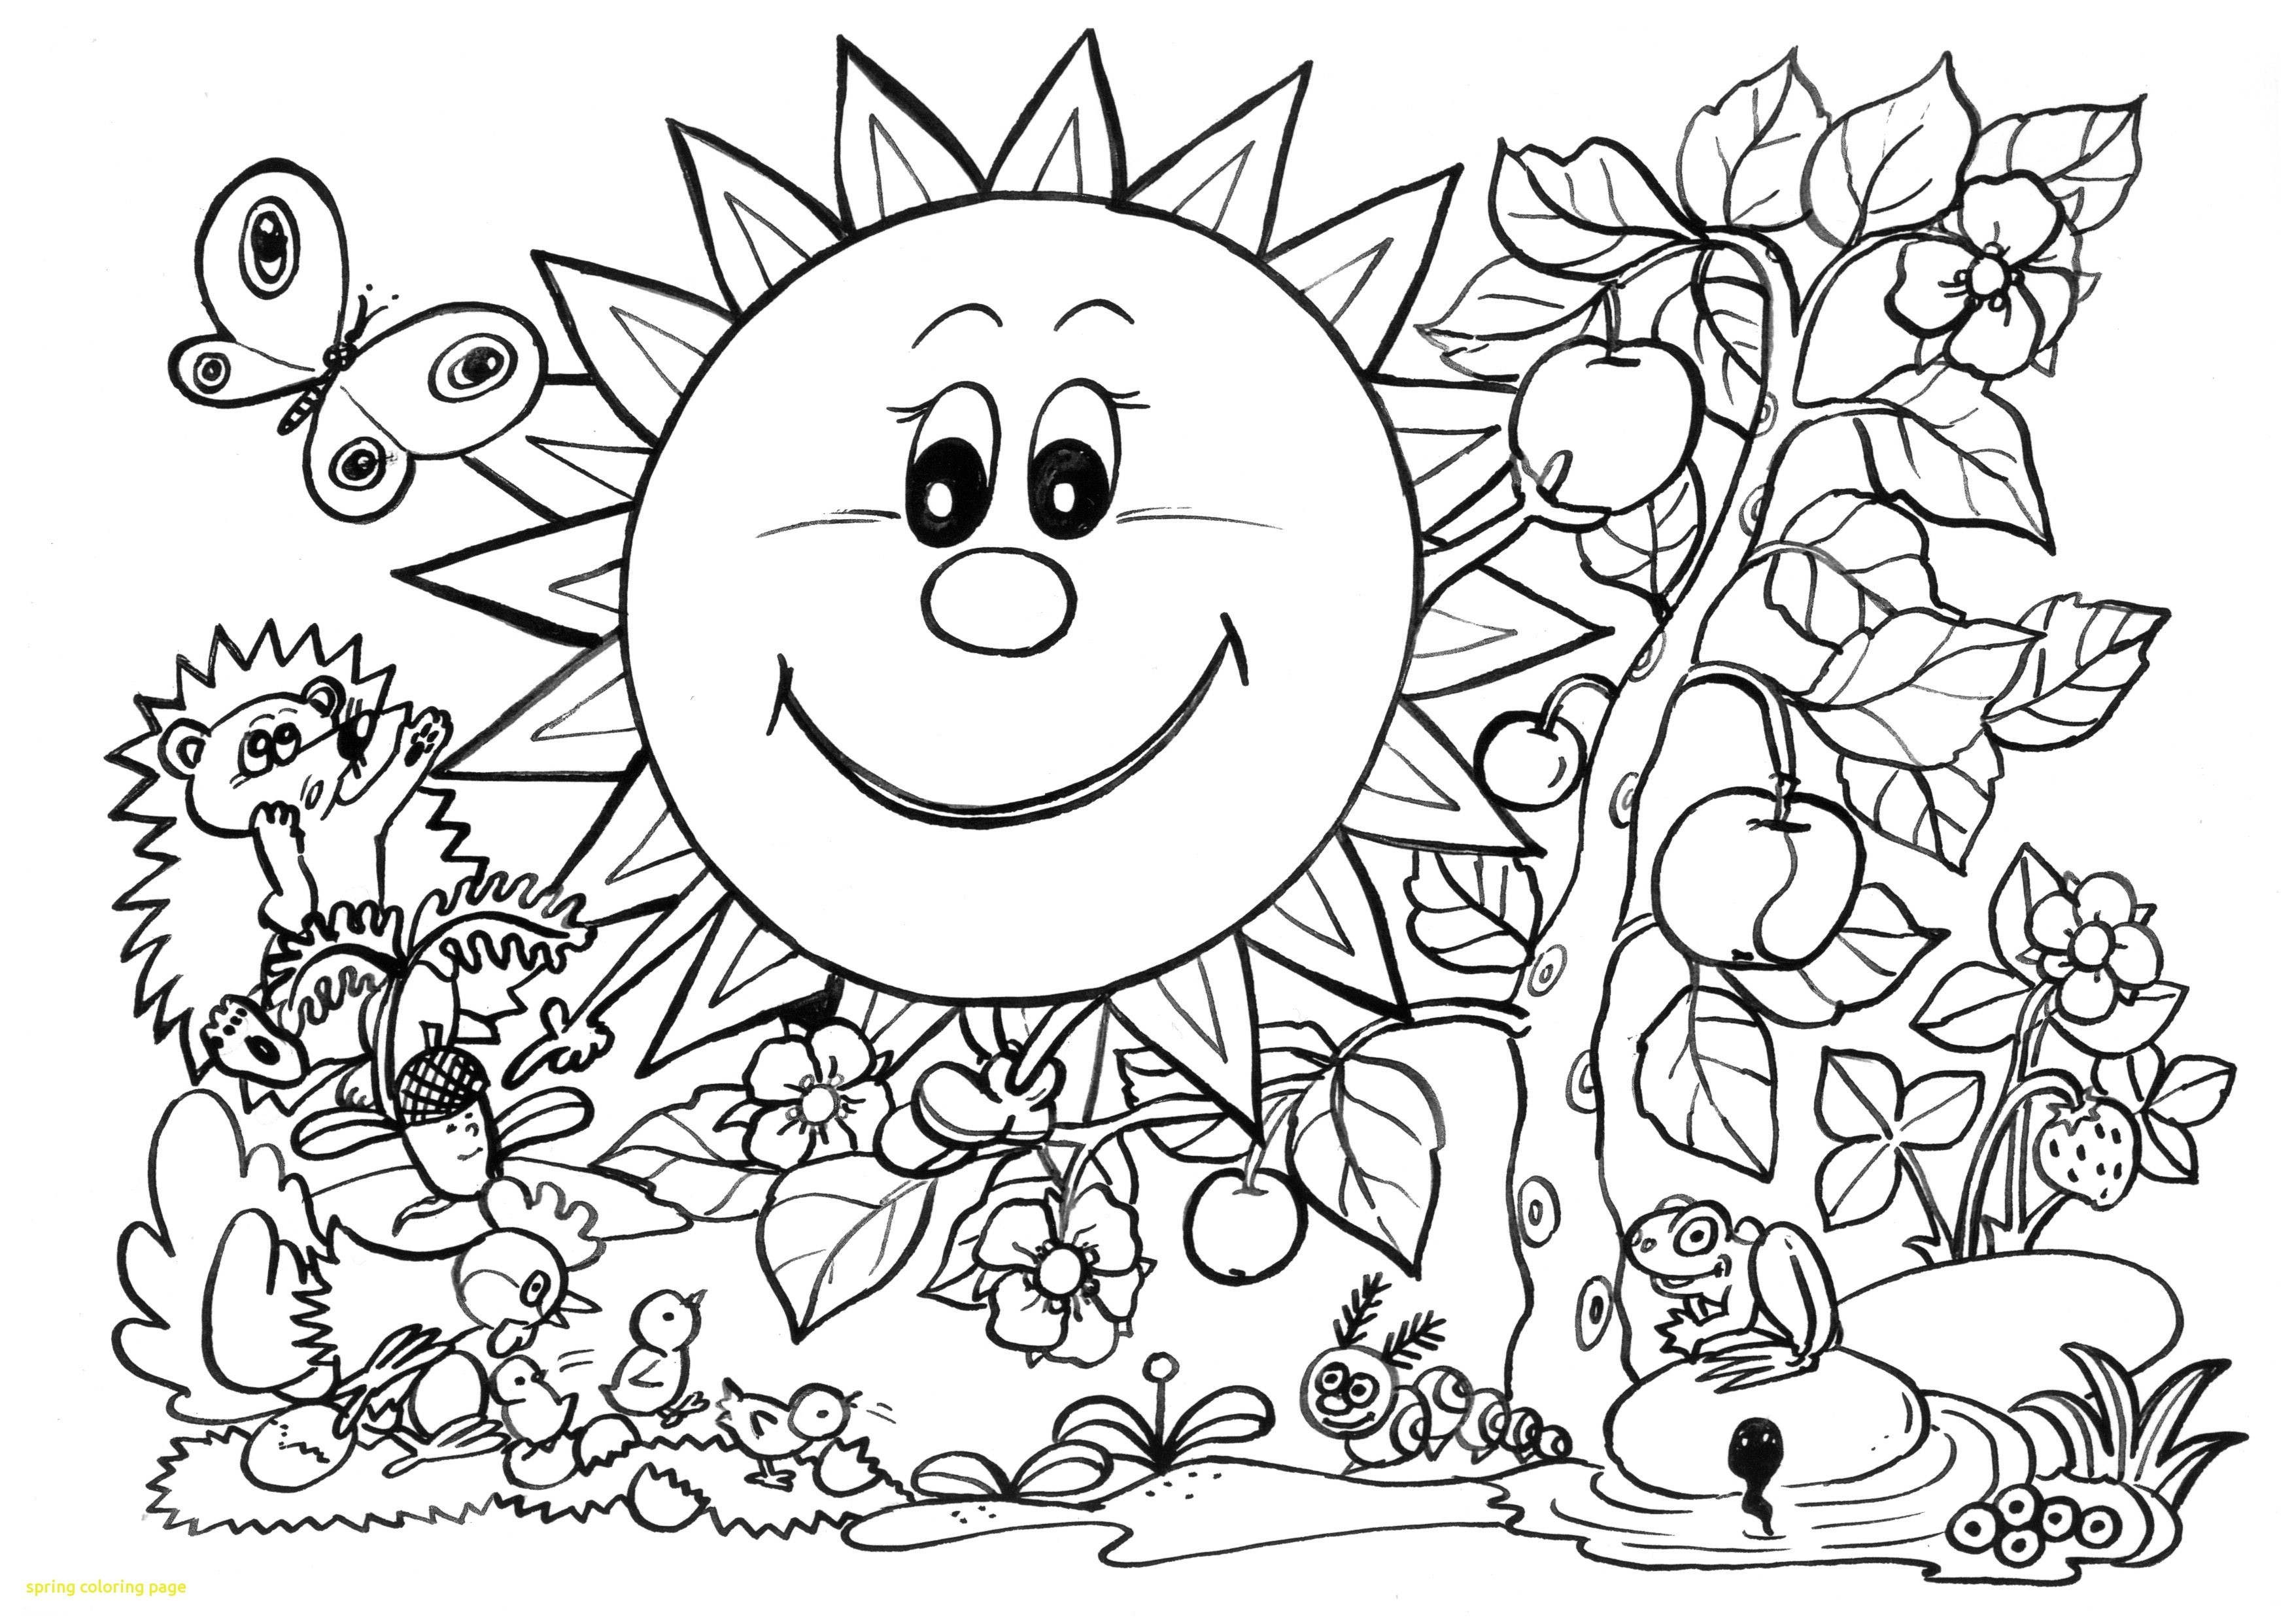 Coloring Ideas : Cute Spring Coloring Pages Unique Free Printable - Spring Coloring Sheets Free Printable